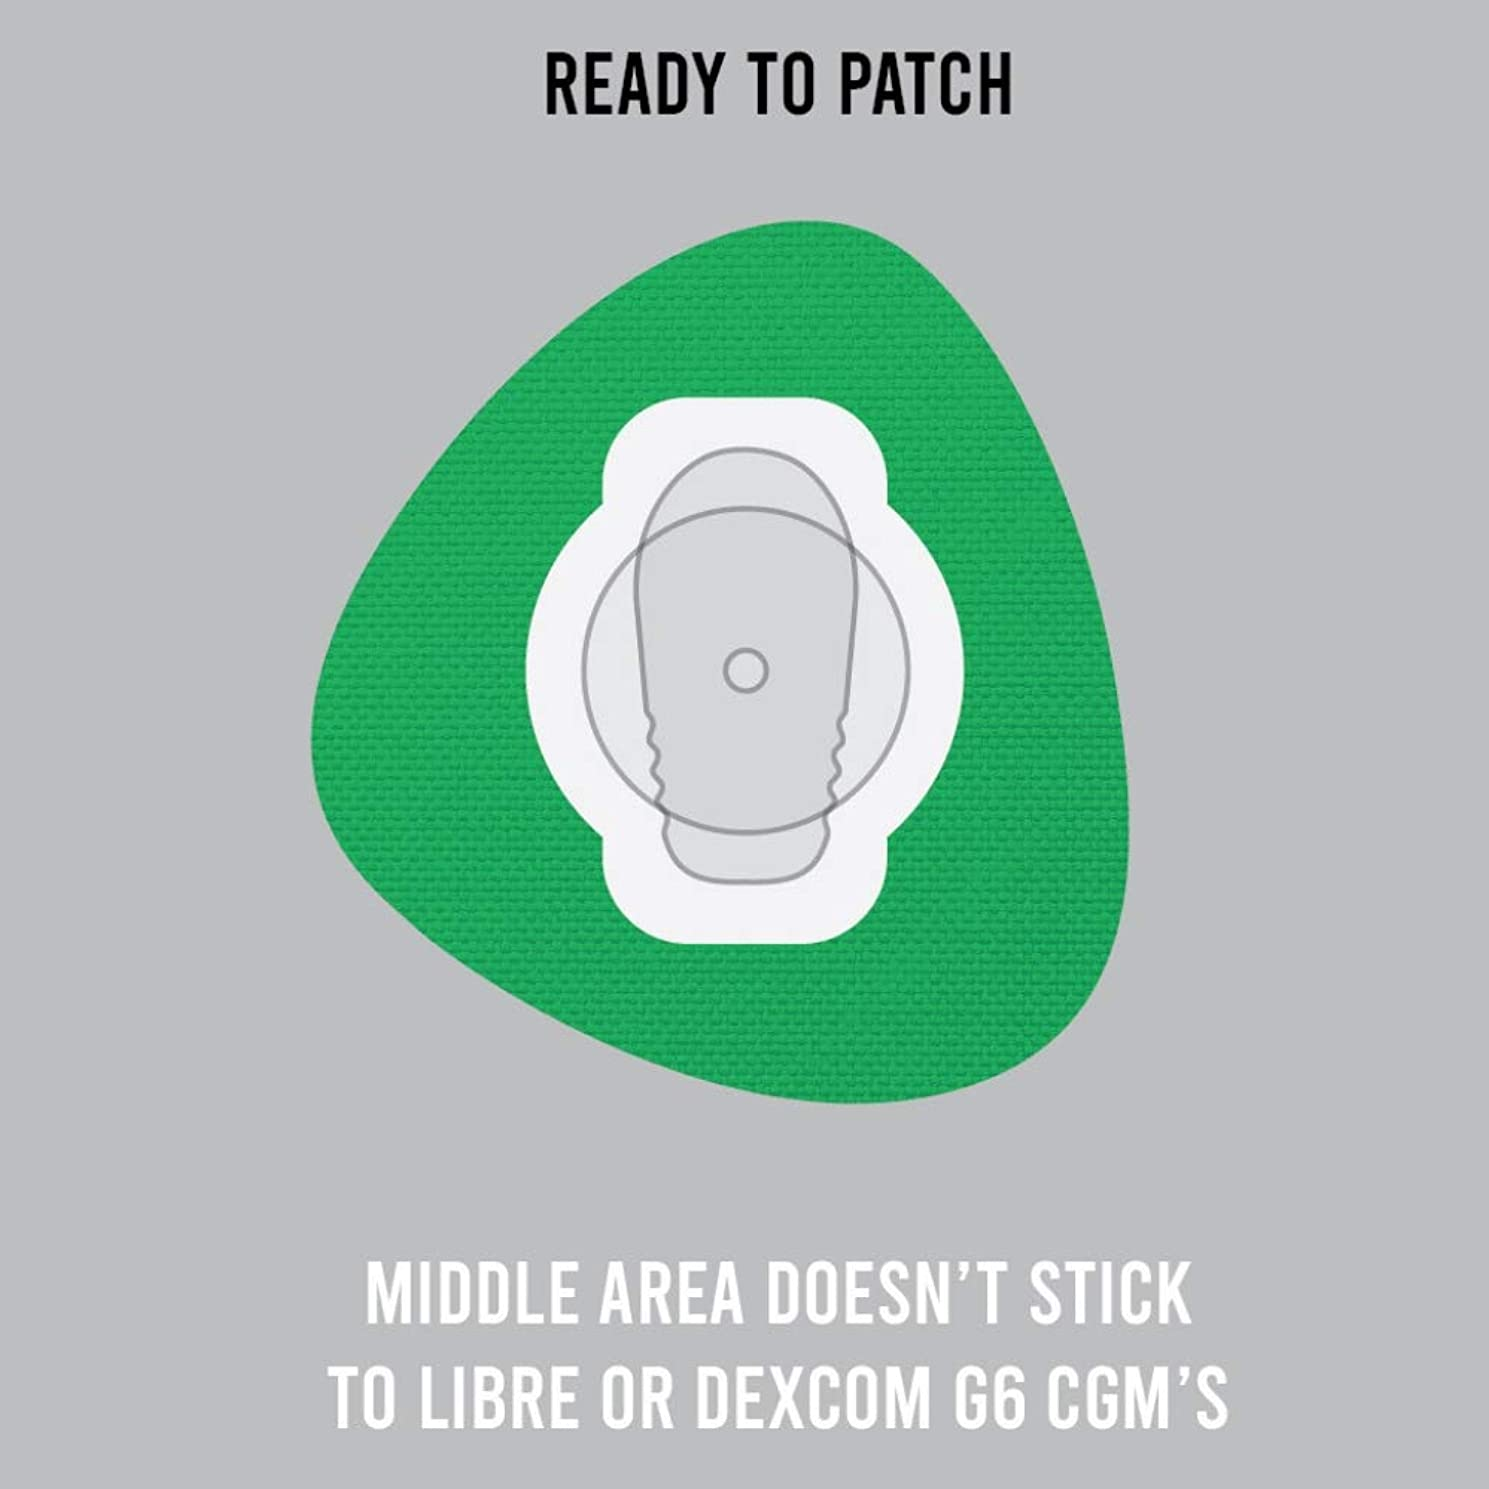 NOT JUST A PATCH - G6 Adhesive Patches - Libre CGM Sensor Protection Patch - Waterproof Hypoallergenic Adhesive - 20 Pack CGM Patches for Diabetics - Long Fixation – Green